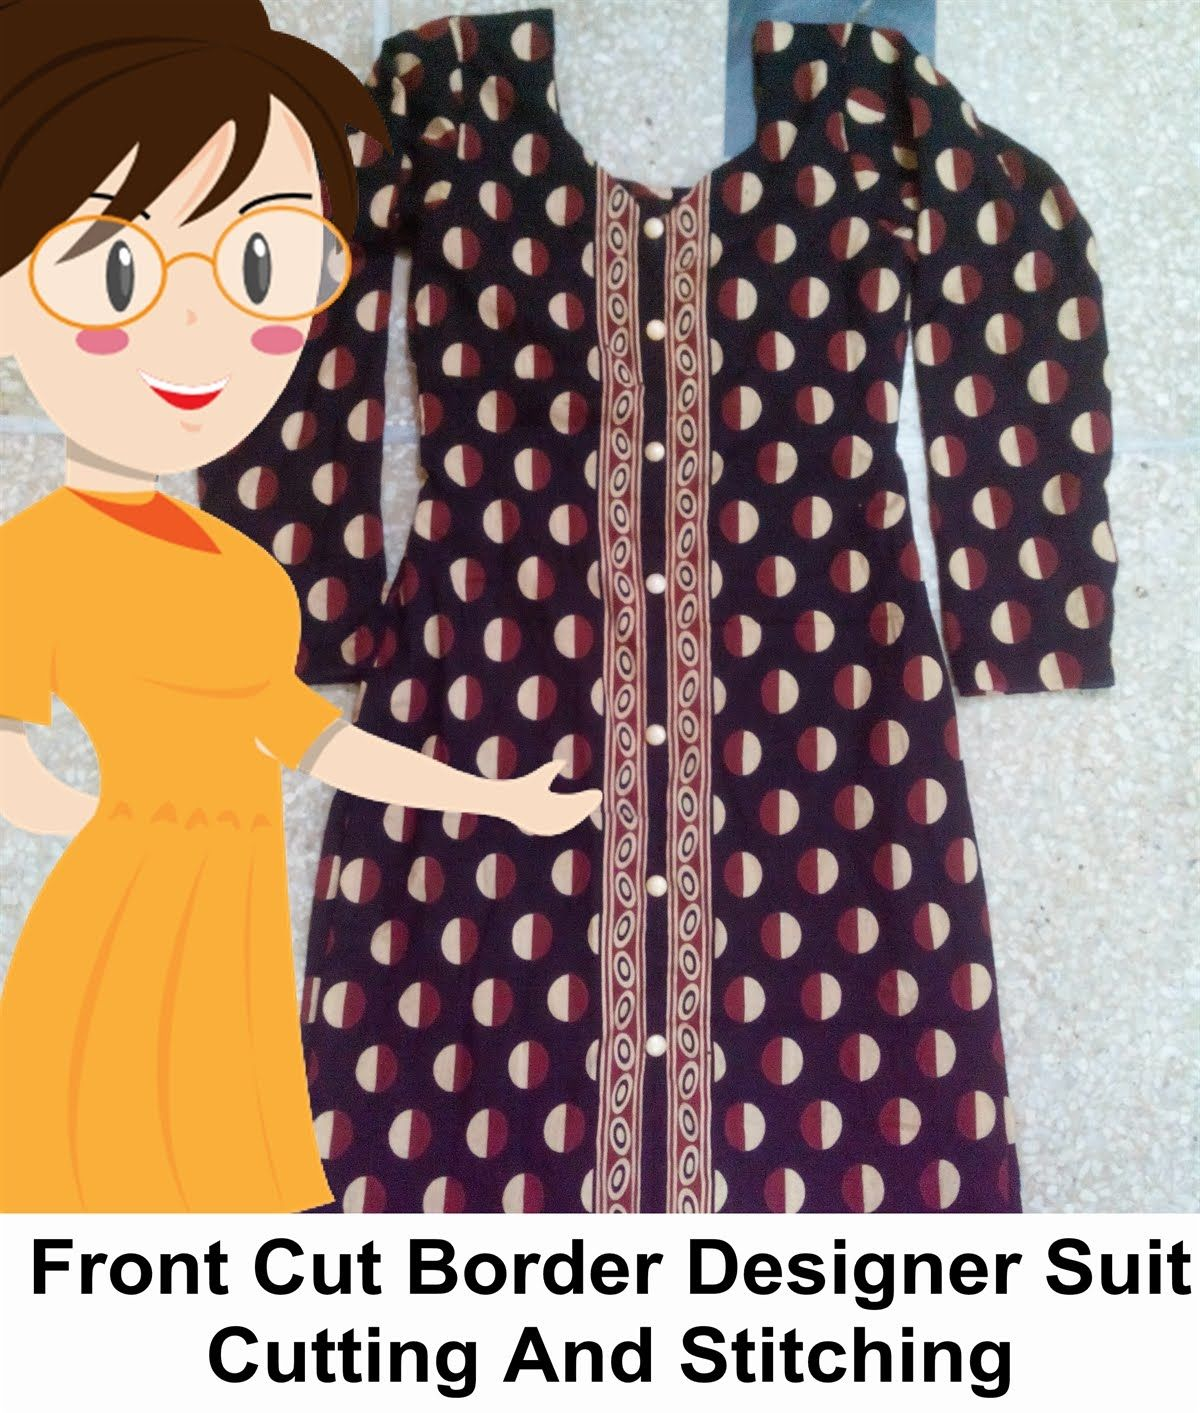 10d57f8caac Front Cut Border Designer Suit Cutting   Stitching - Tailoring With Usha -  YouTube